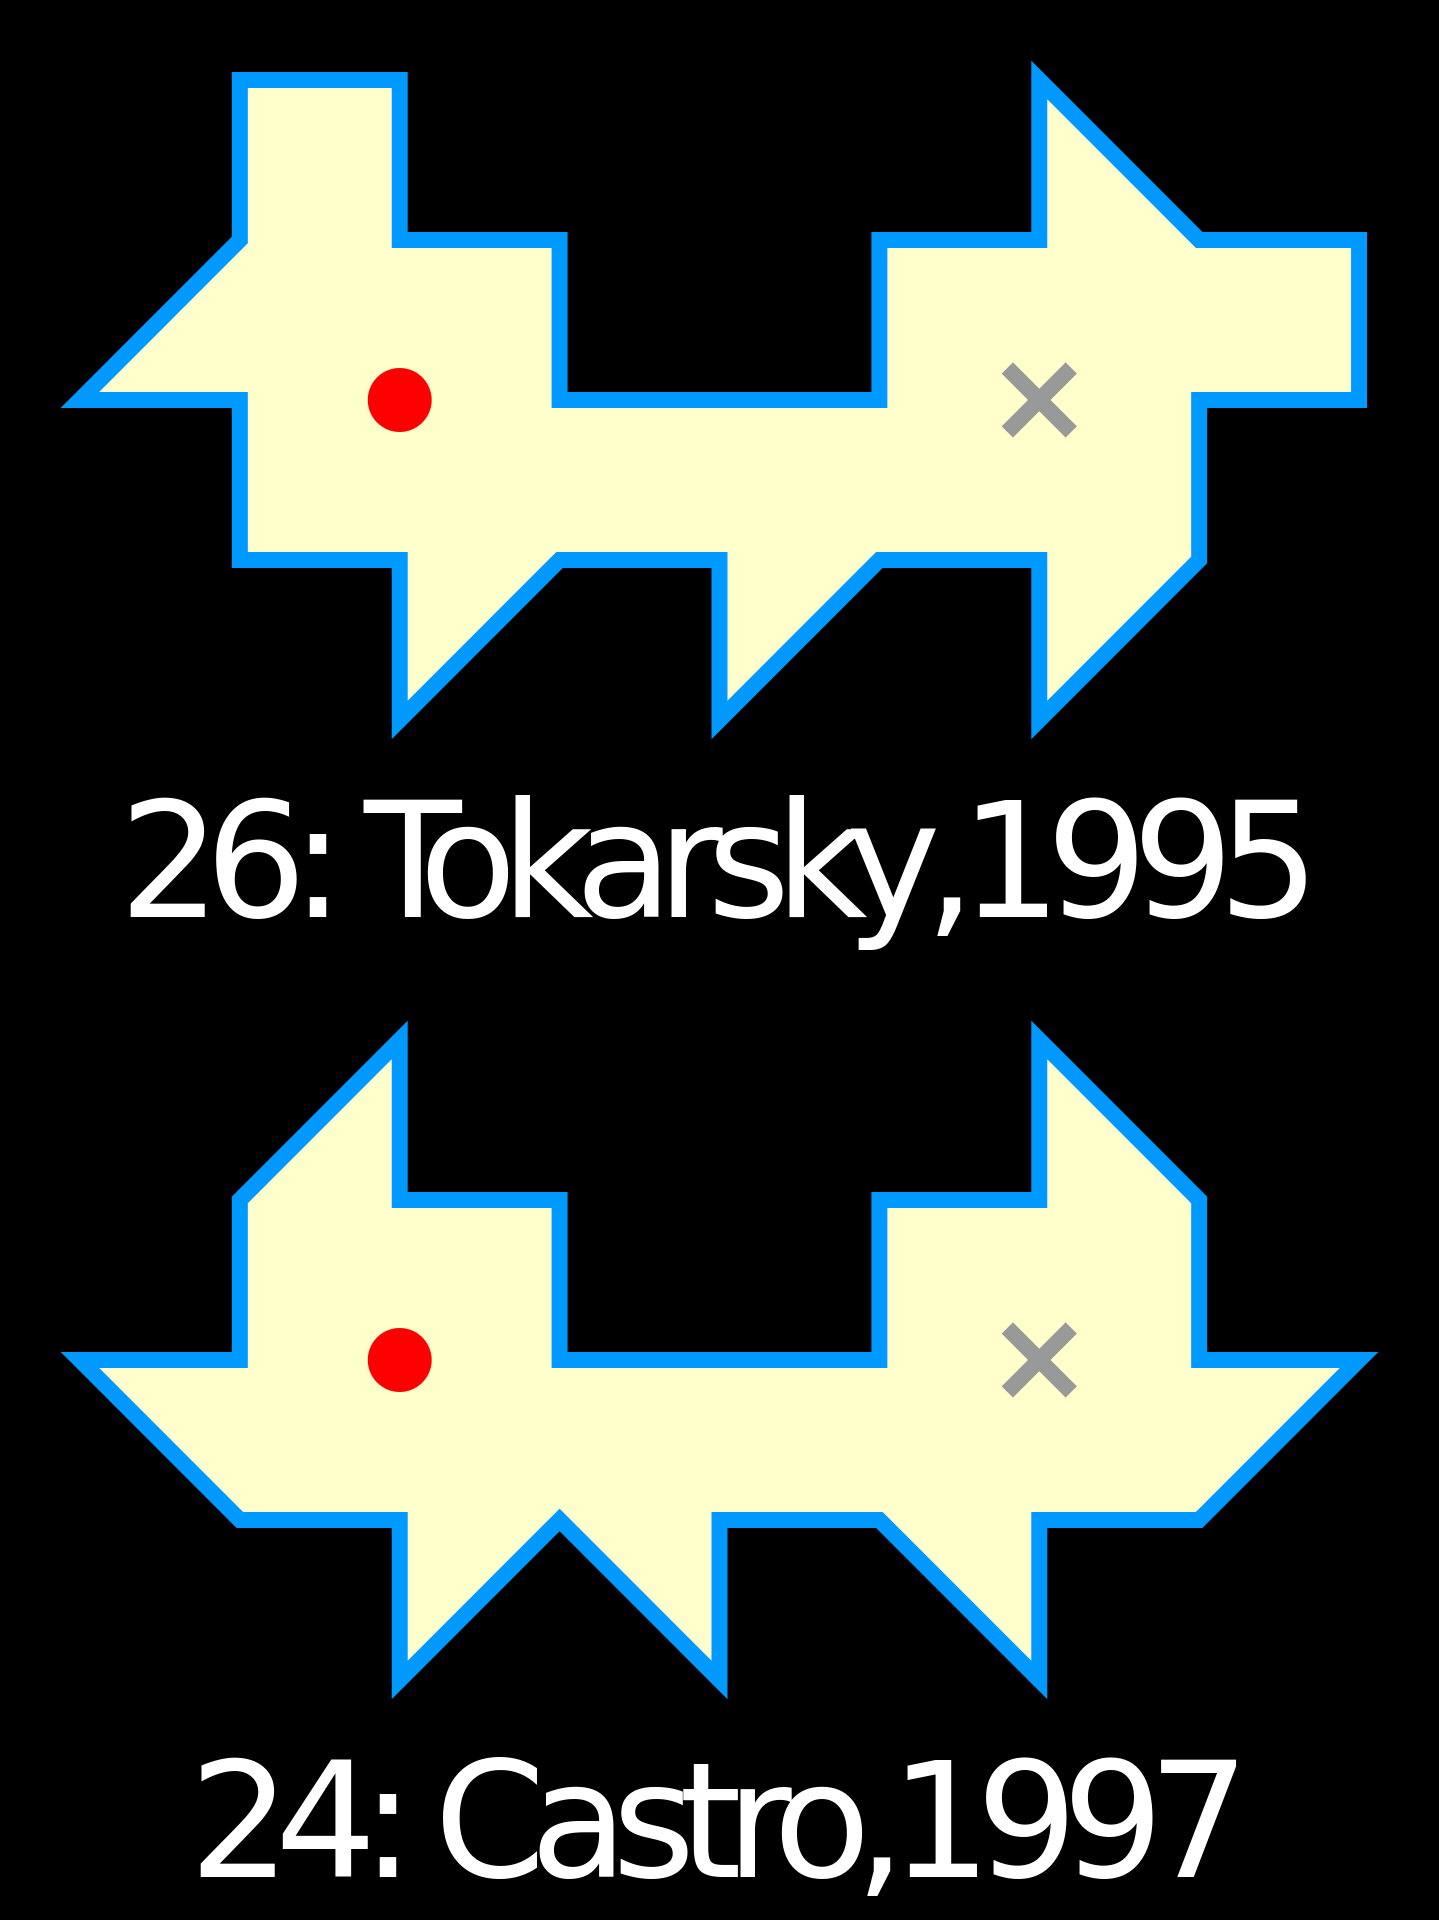 Two solutions with the light source in red and the blind spot as a cross. Tokarsky came up with the first solution and then Castro improved on it two years later.